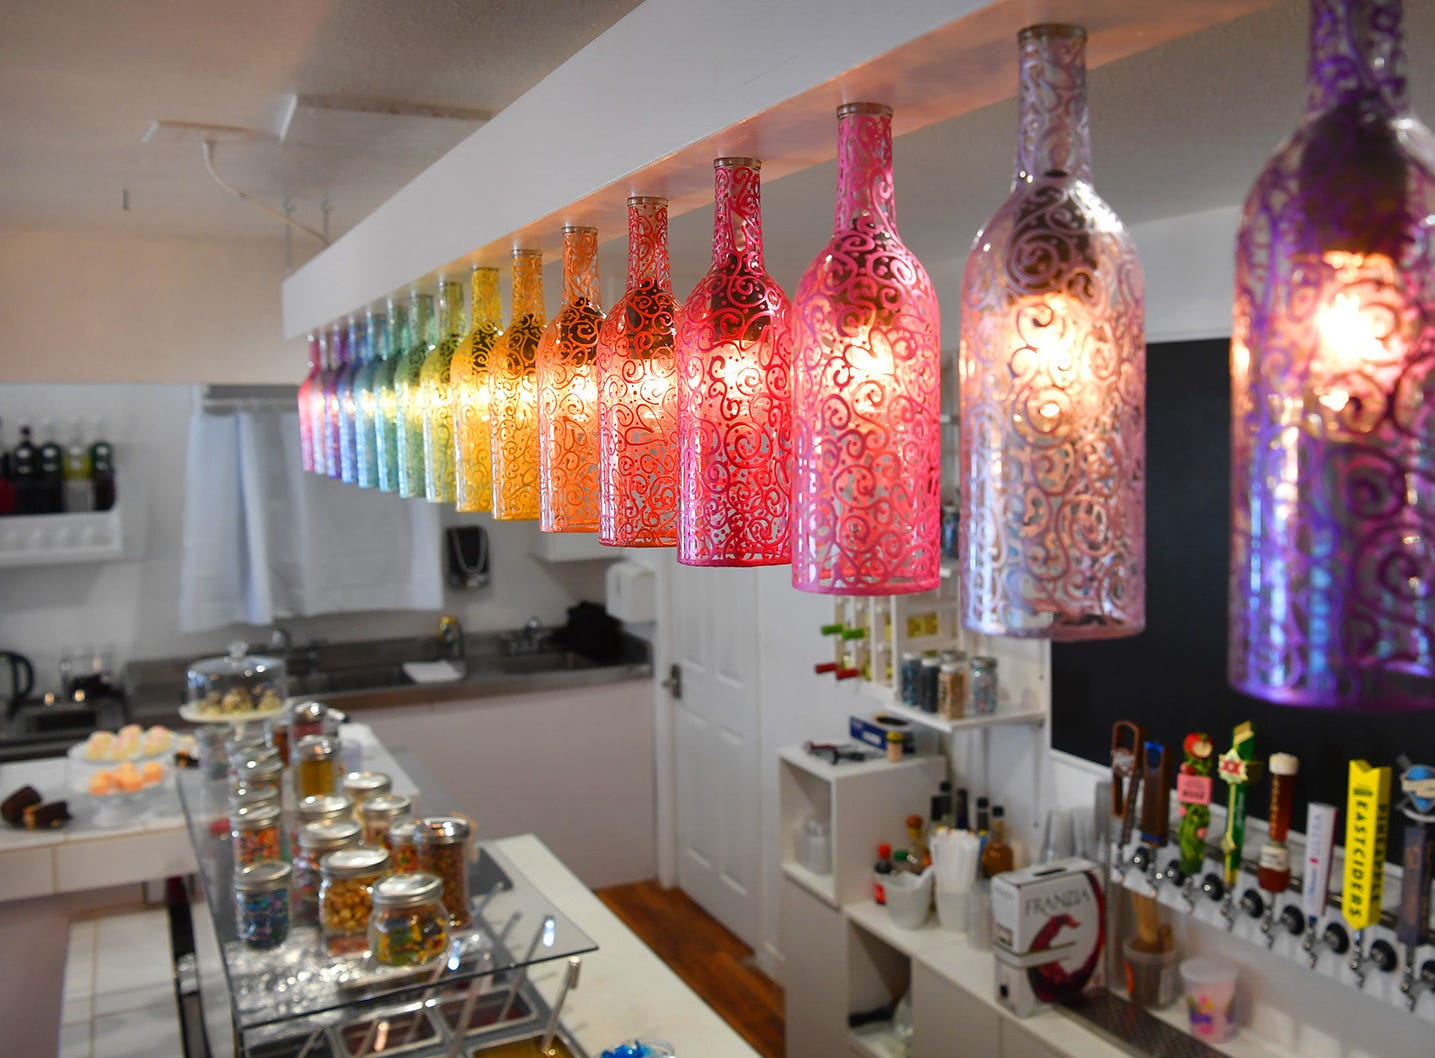 Hand-painted wine bottles make up many of the light fixtures in Clink!, a new adult dessert bar located on Kemp Blvd. The light and colorful decor was designed by the owner, Brenna Pohlod.